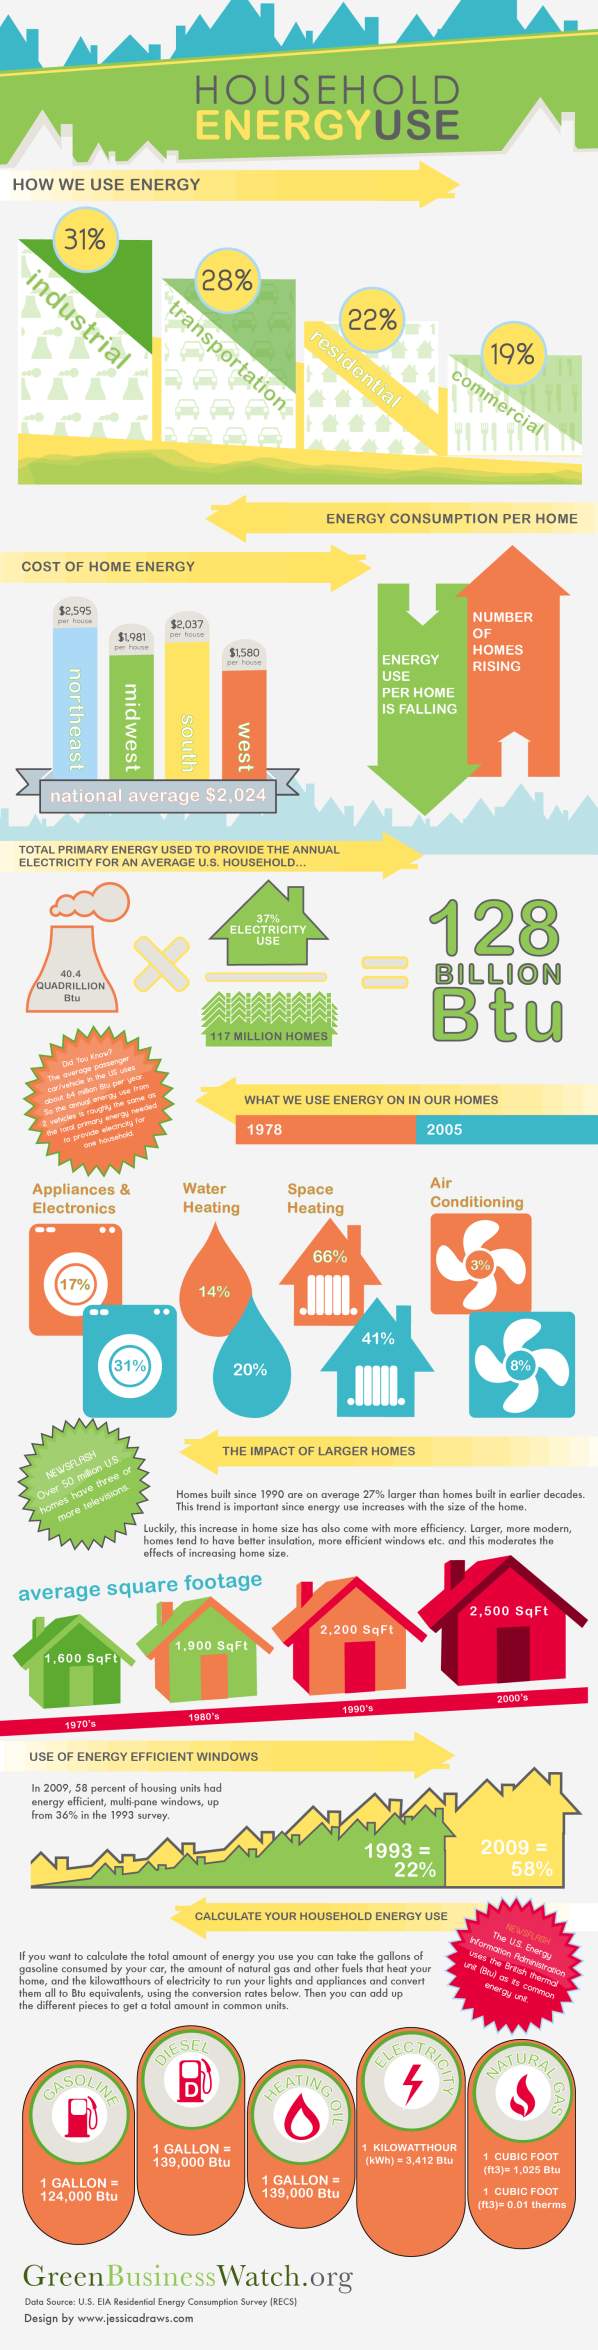 Infographic courtesy greenbusinesswatch.org